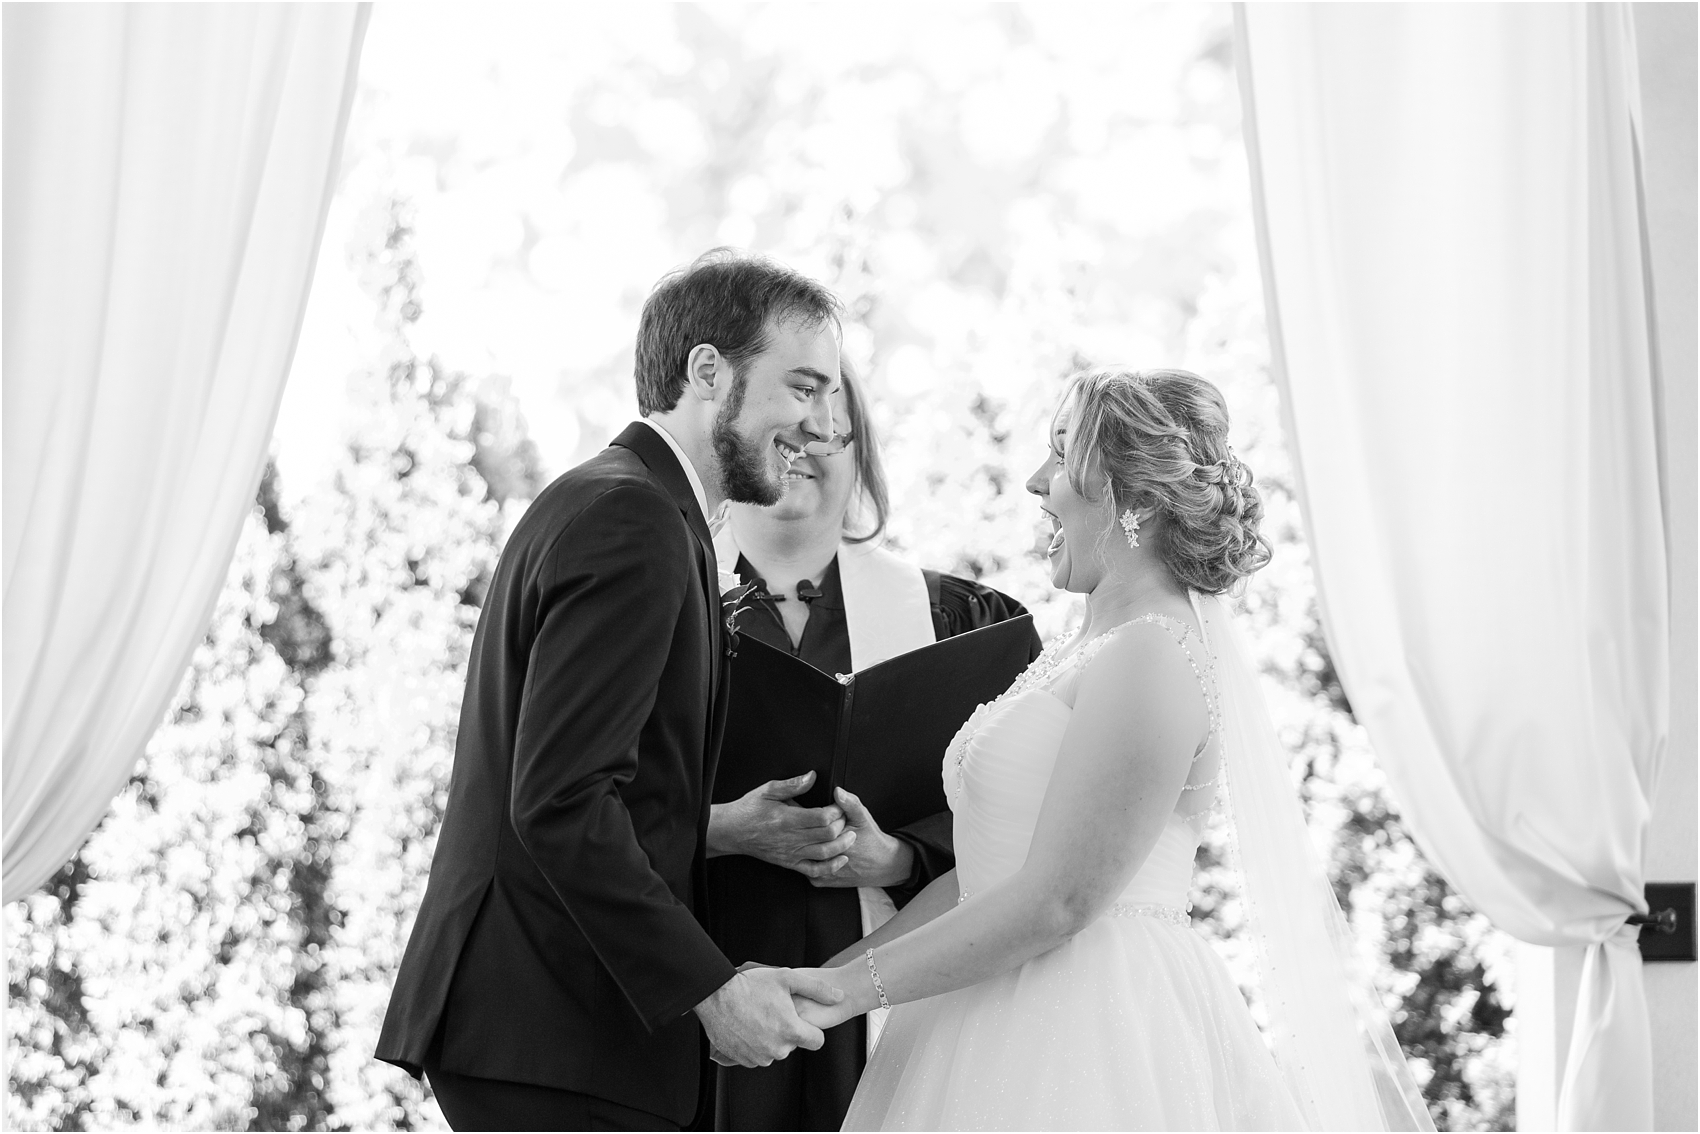 lord-of-the-rings-inspired-wedding-photos-at-crystal-gardens-in-howell-mi-by-courtney-carolyn-photography_0048.jpg